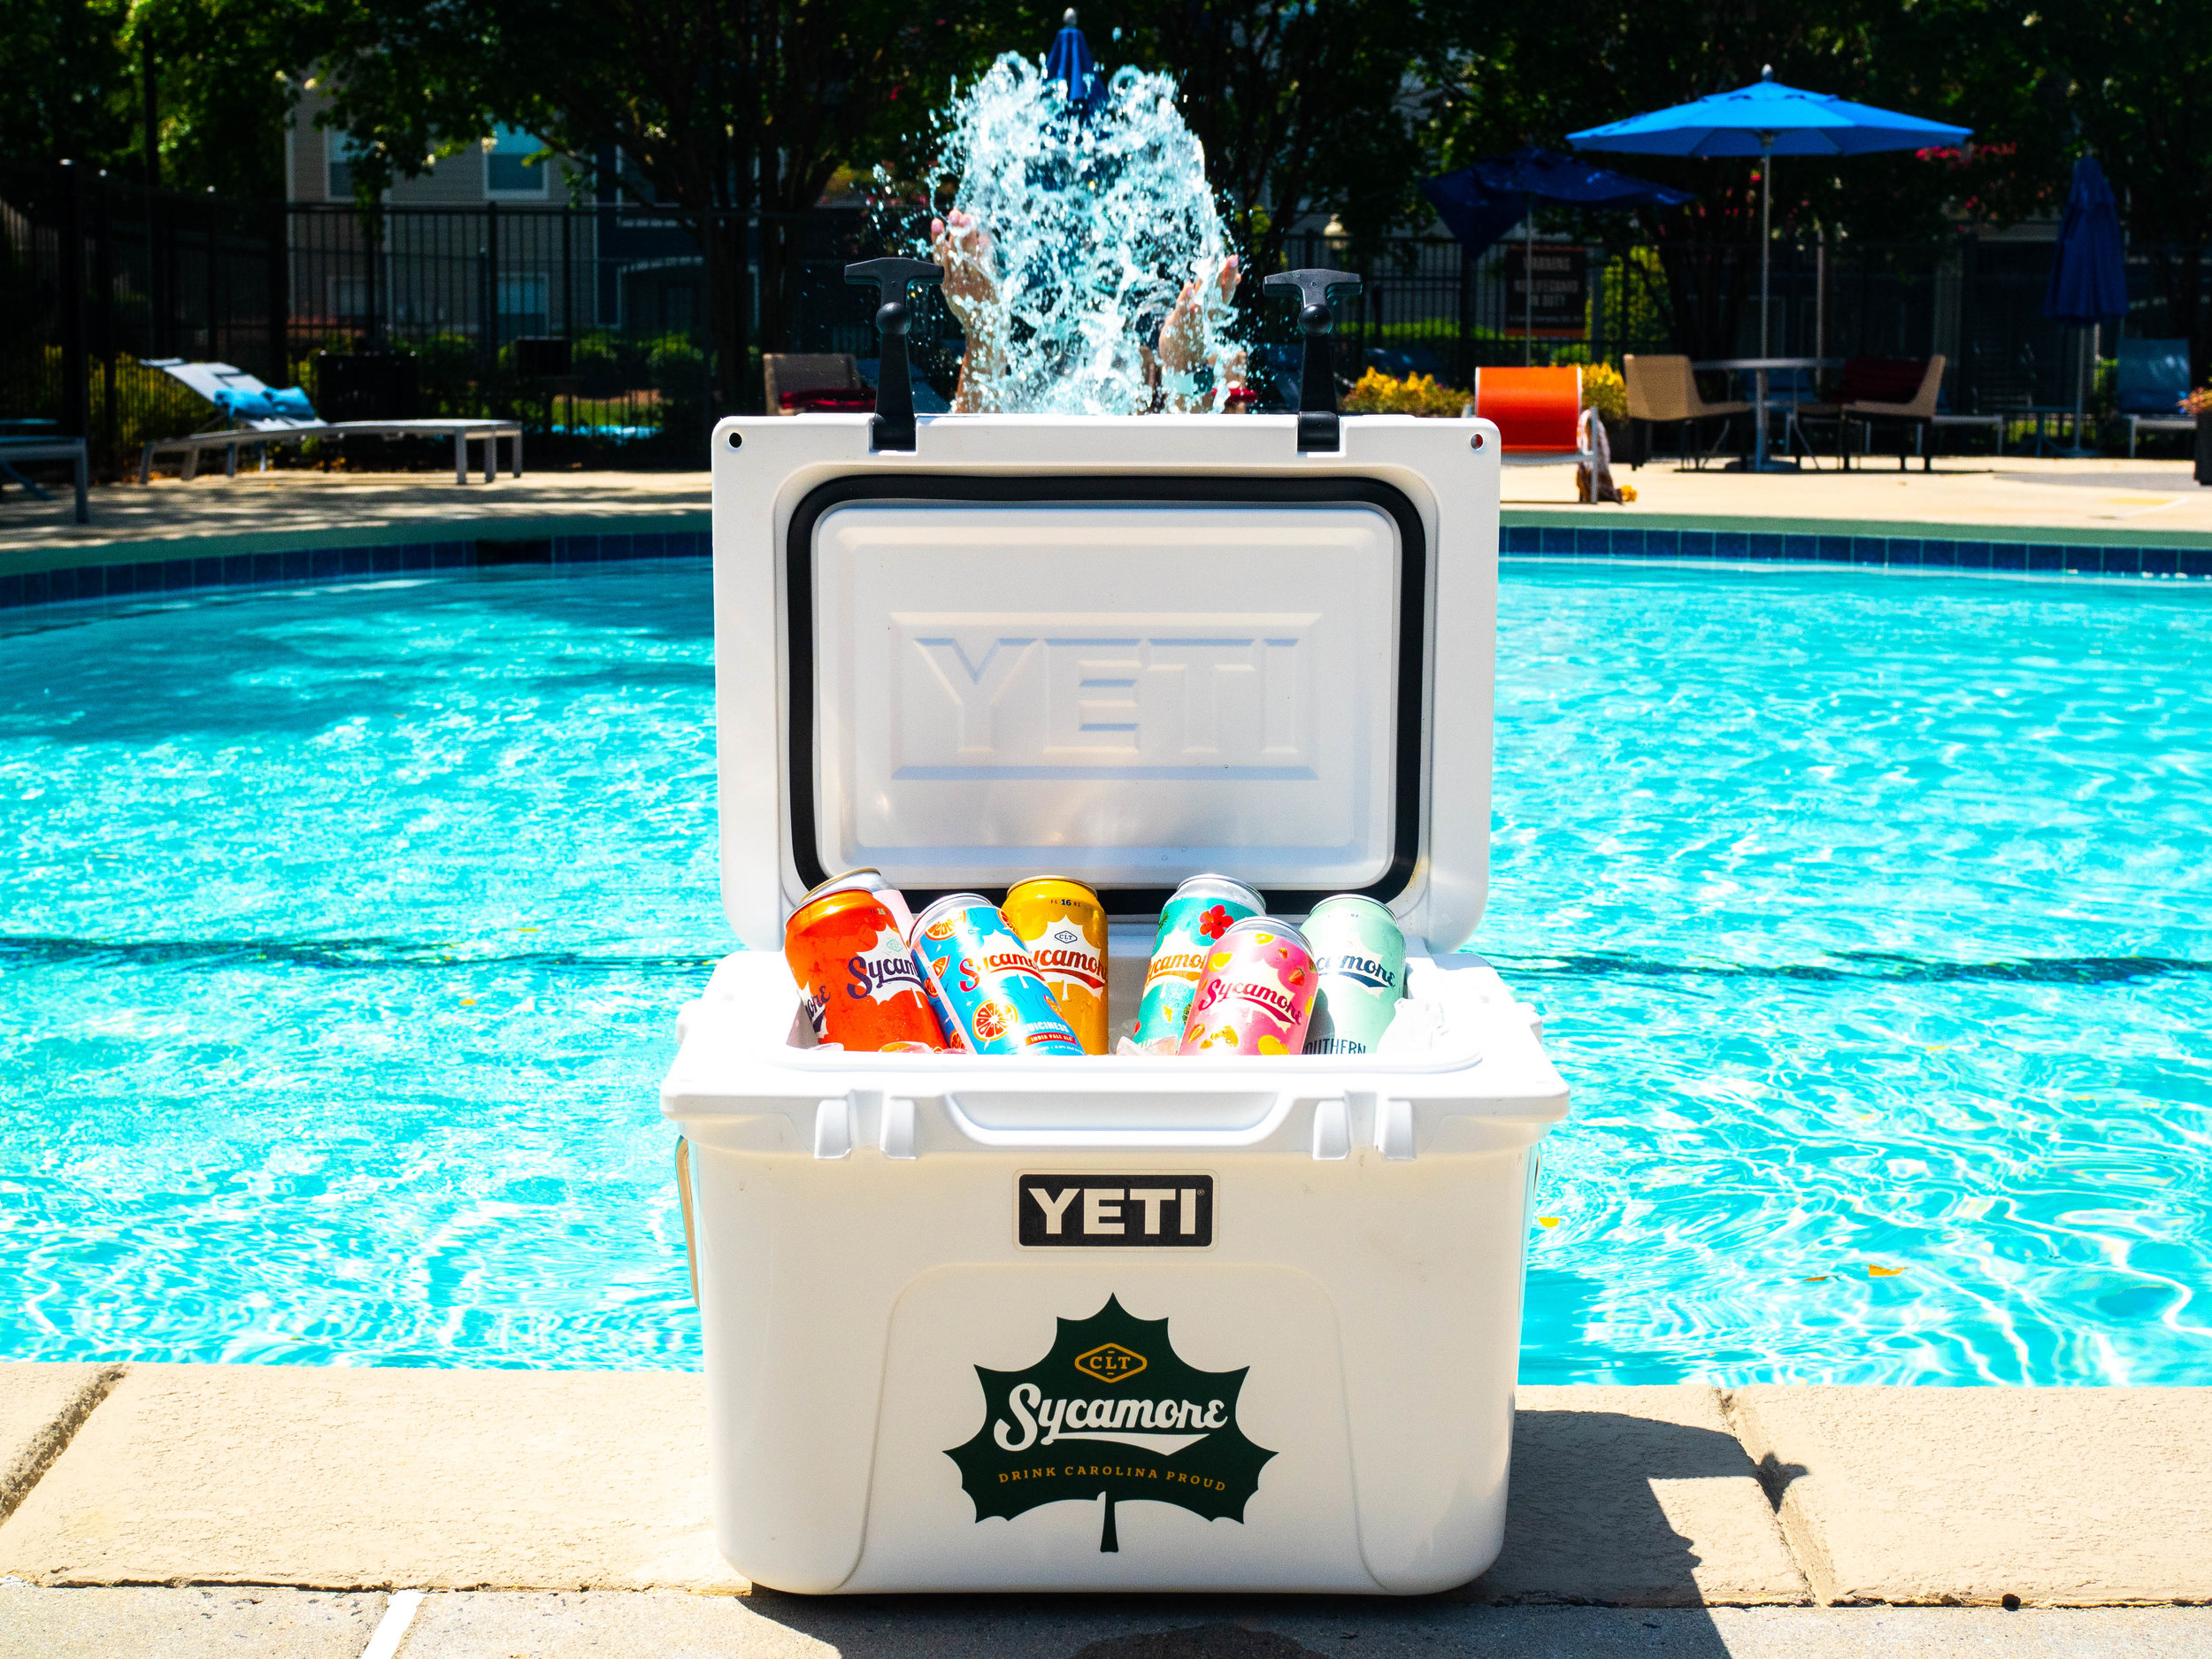 Yeti Giveaway! — Sycamore Brewing